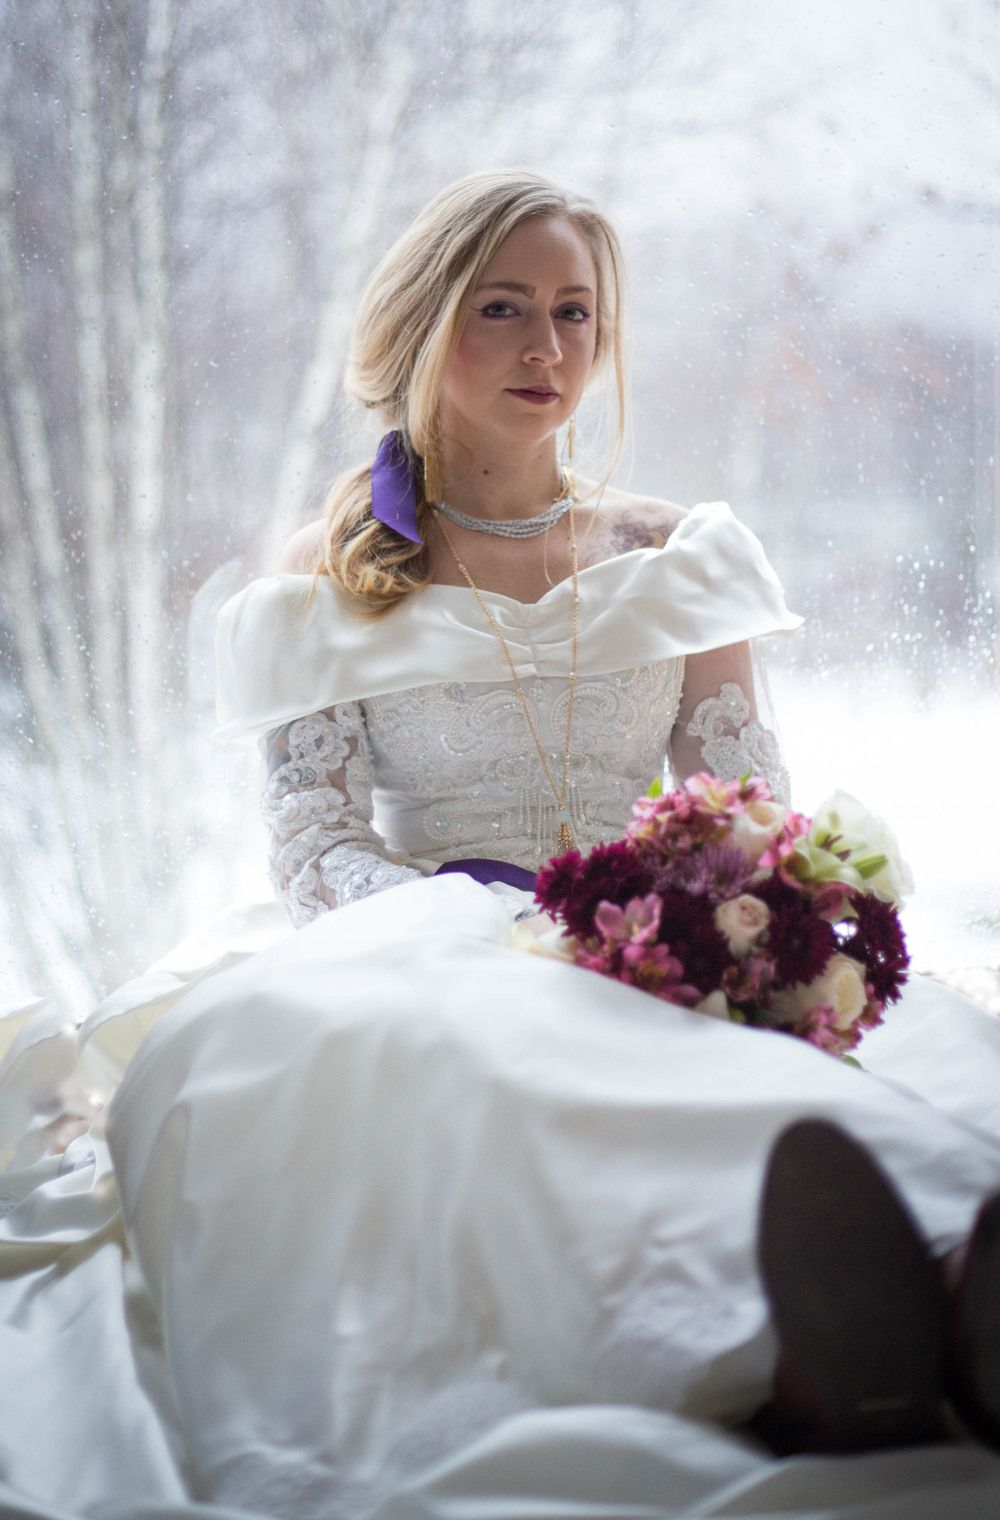 Leather wedding dress  Styled bridal shoot on a cold New England day including a vintage